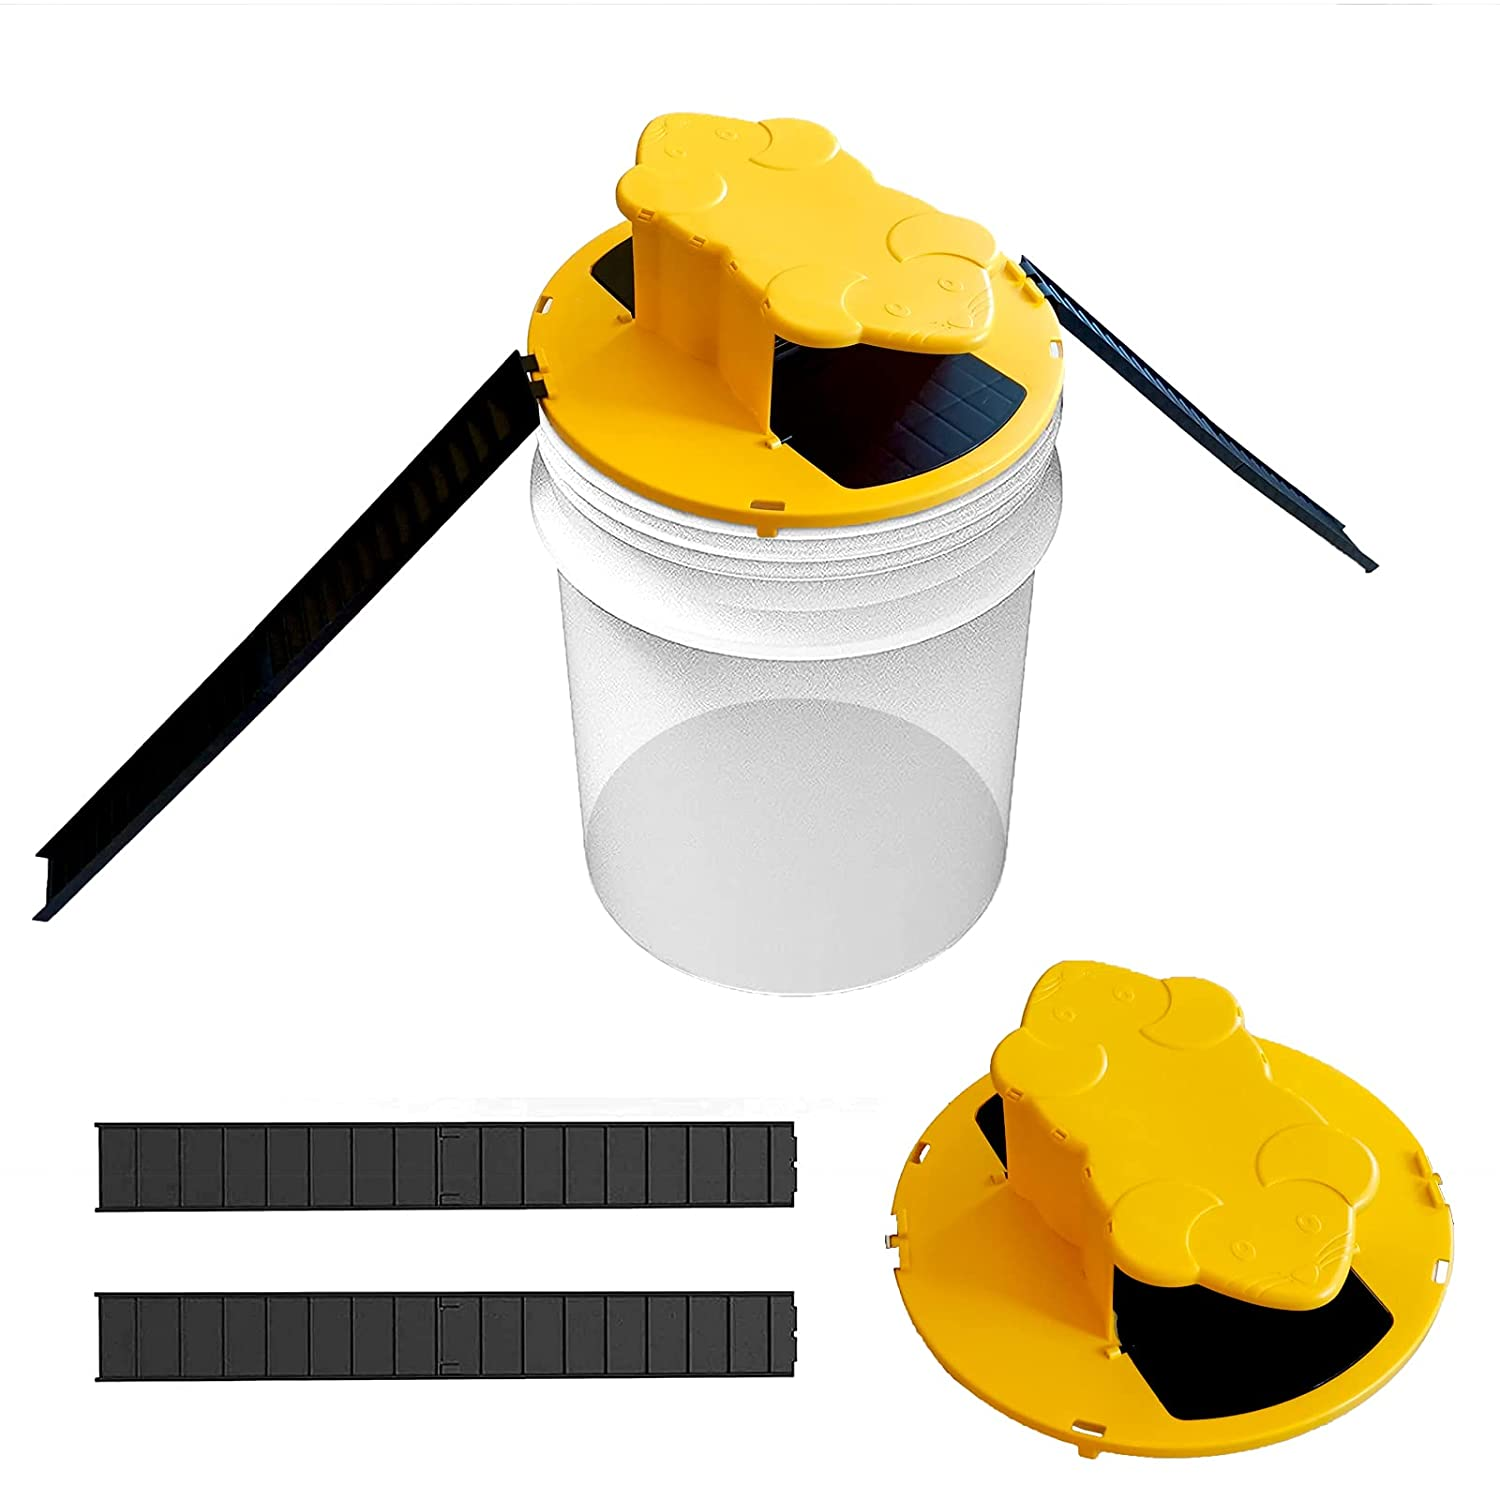 Mouse Trap Bucket Flip 2021 autumn and winter new Super special price Slide Lid N